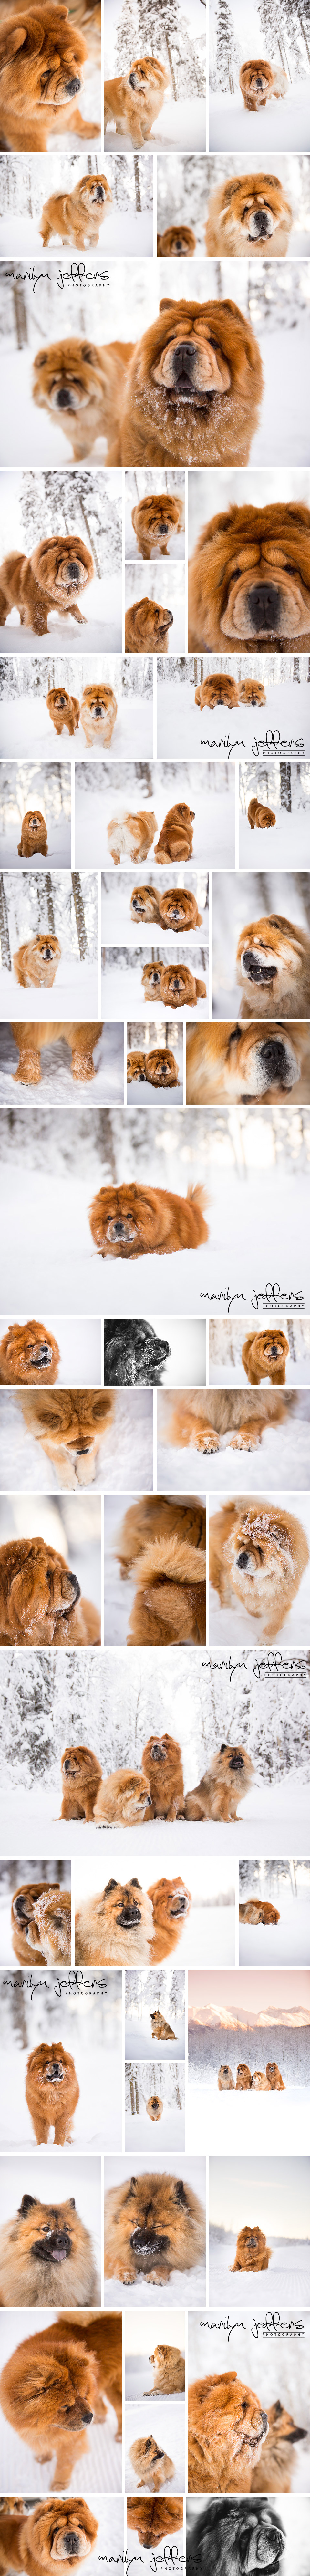 Linhart_Dog_Winter_Snow_Photographer_EagleRiver1